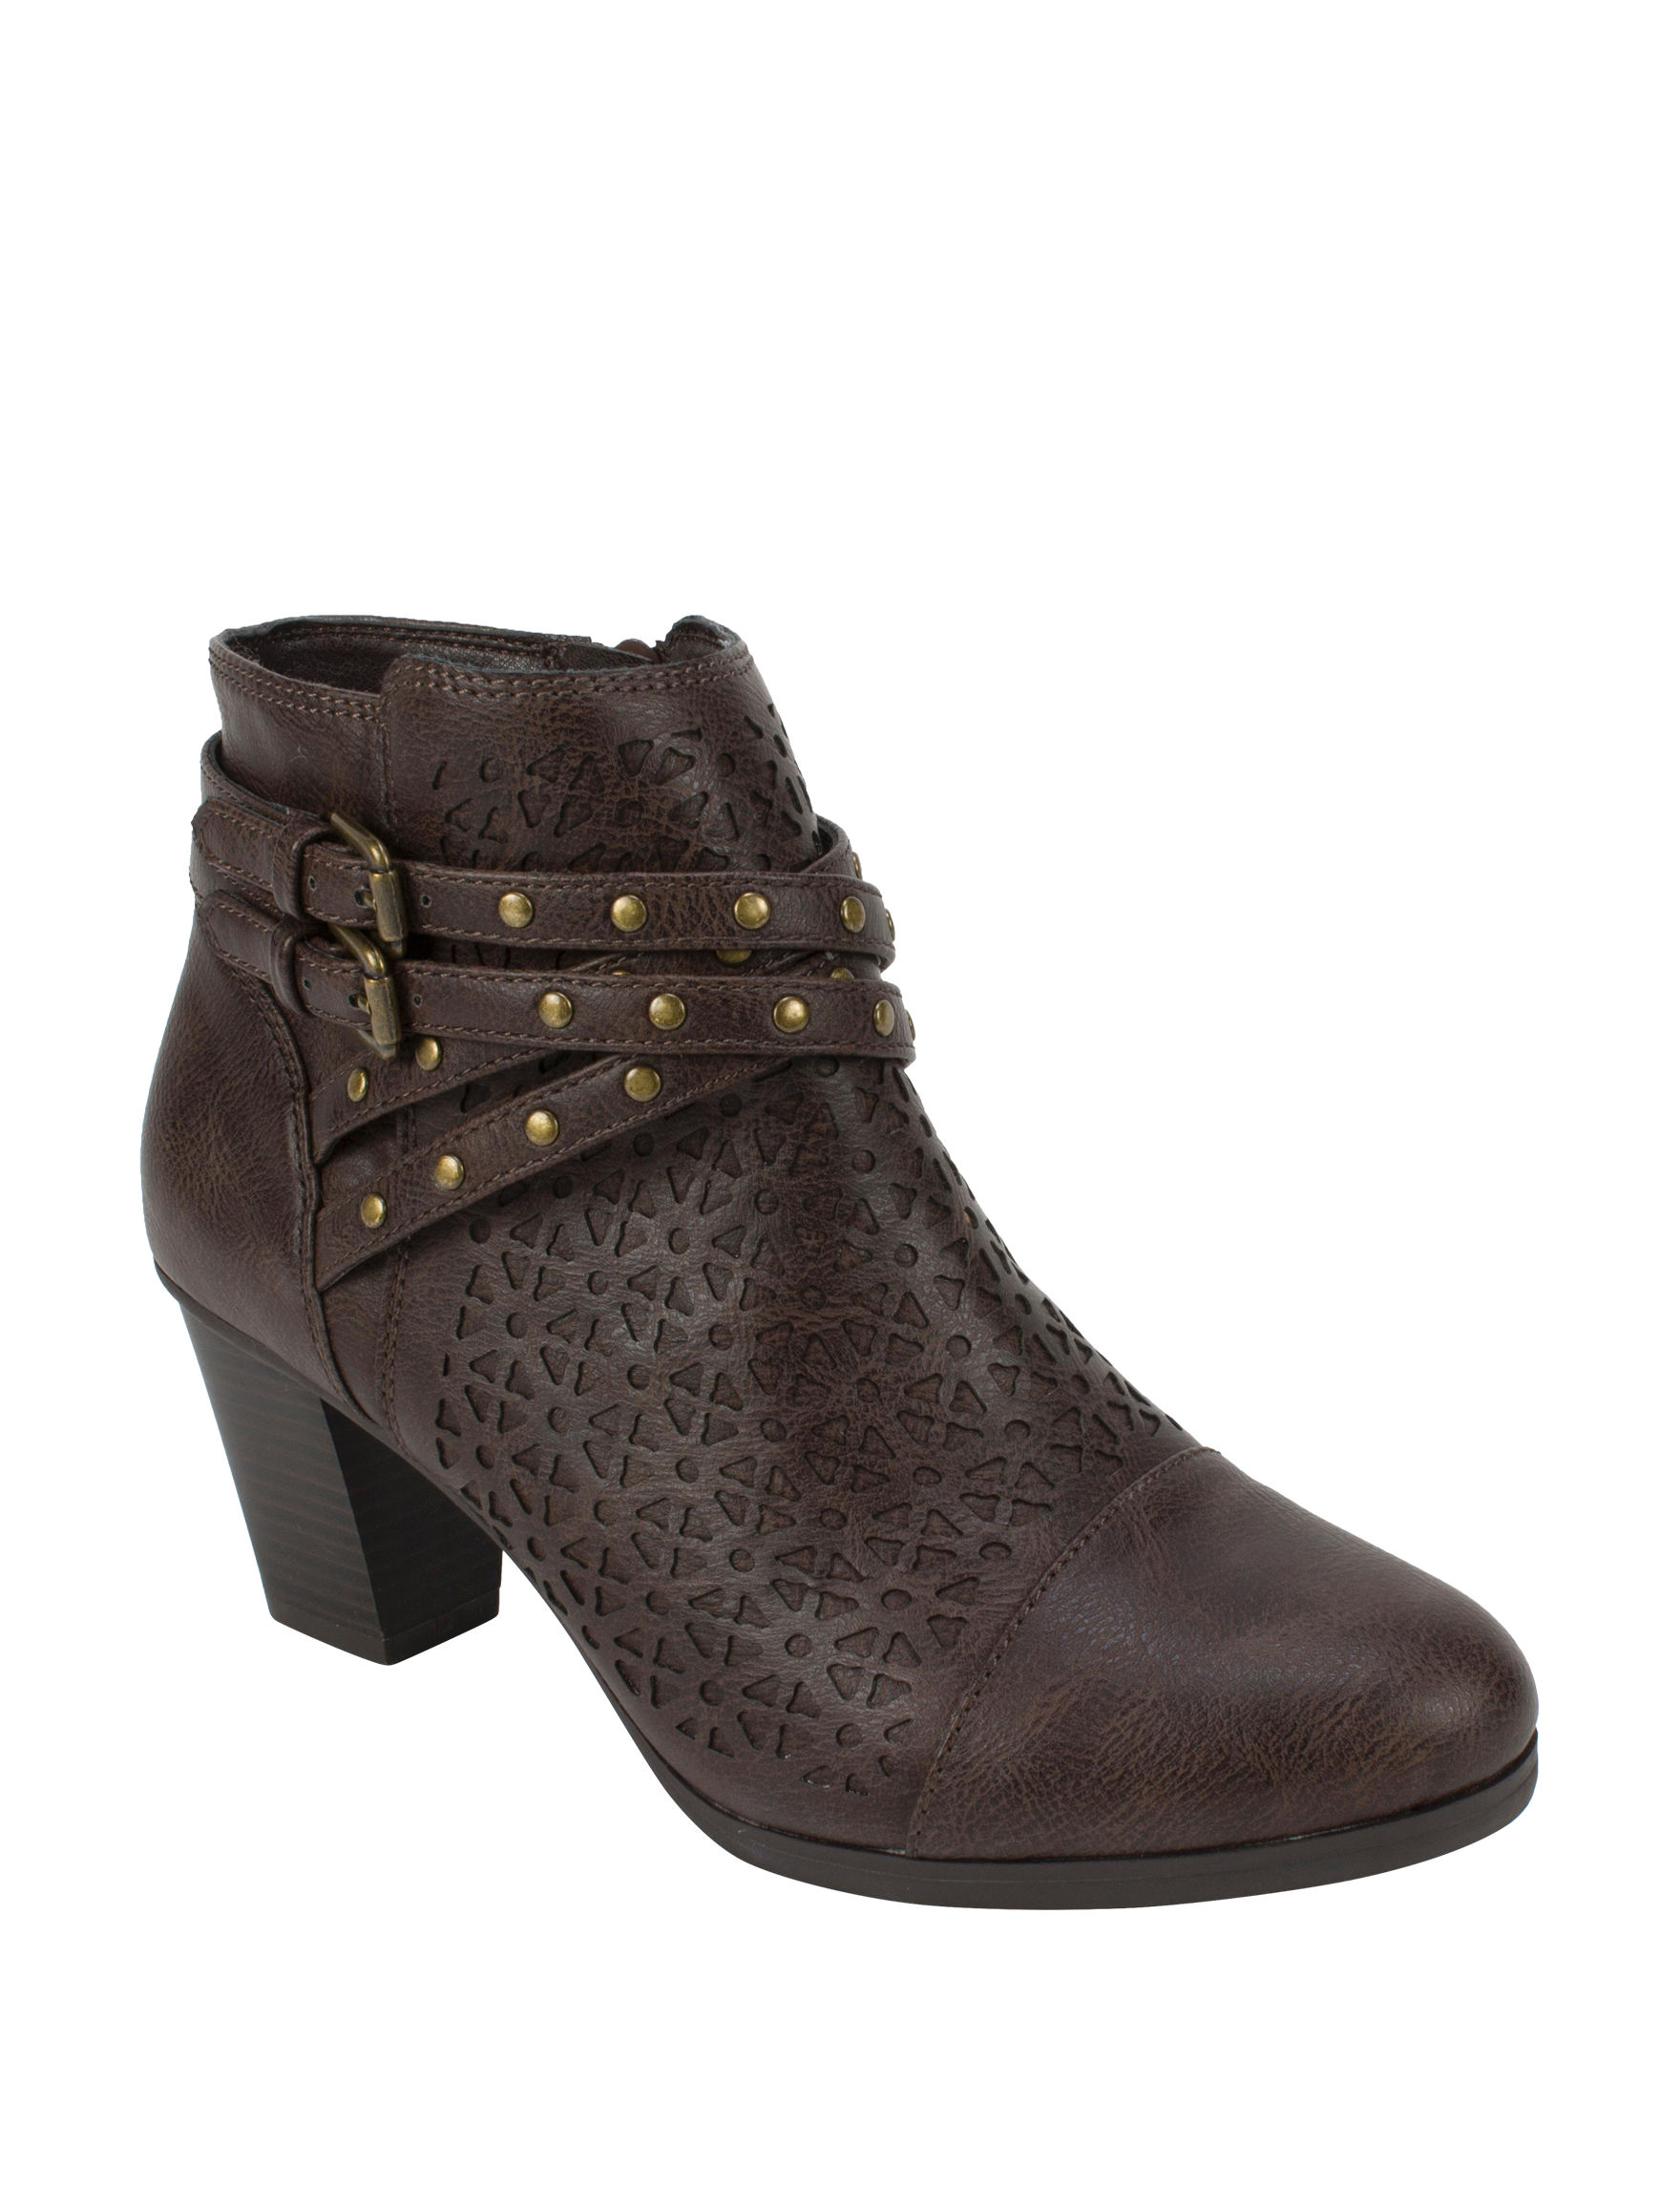 Rialto Brown Ankle Boots & Booties Comfort